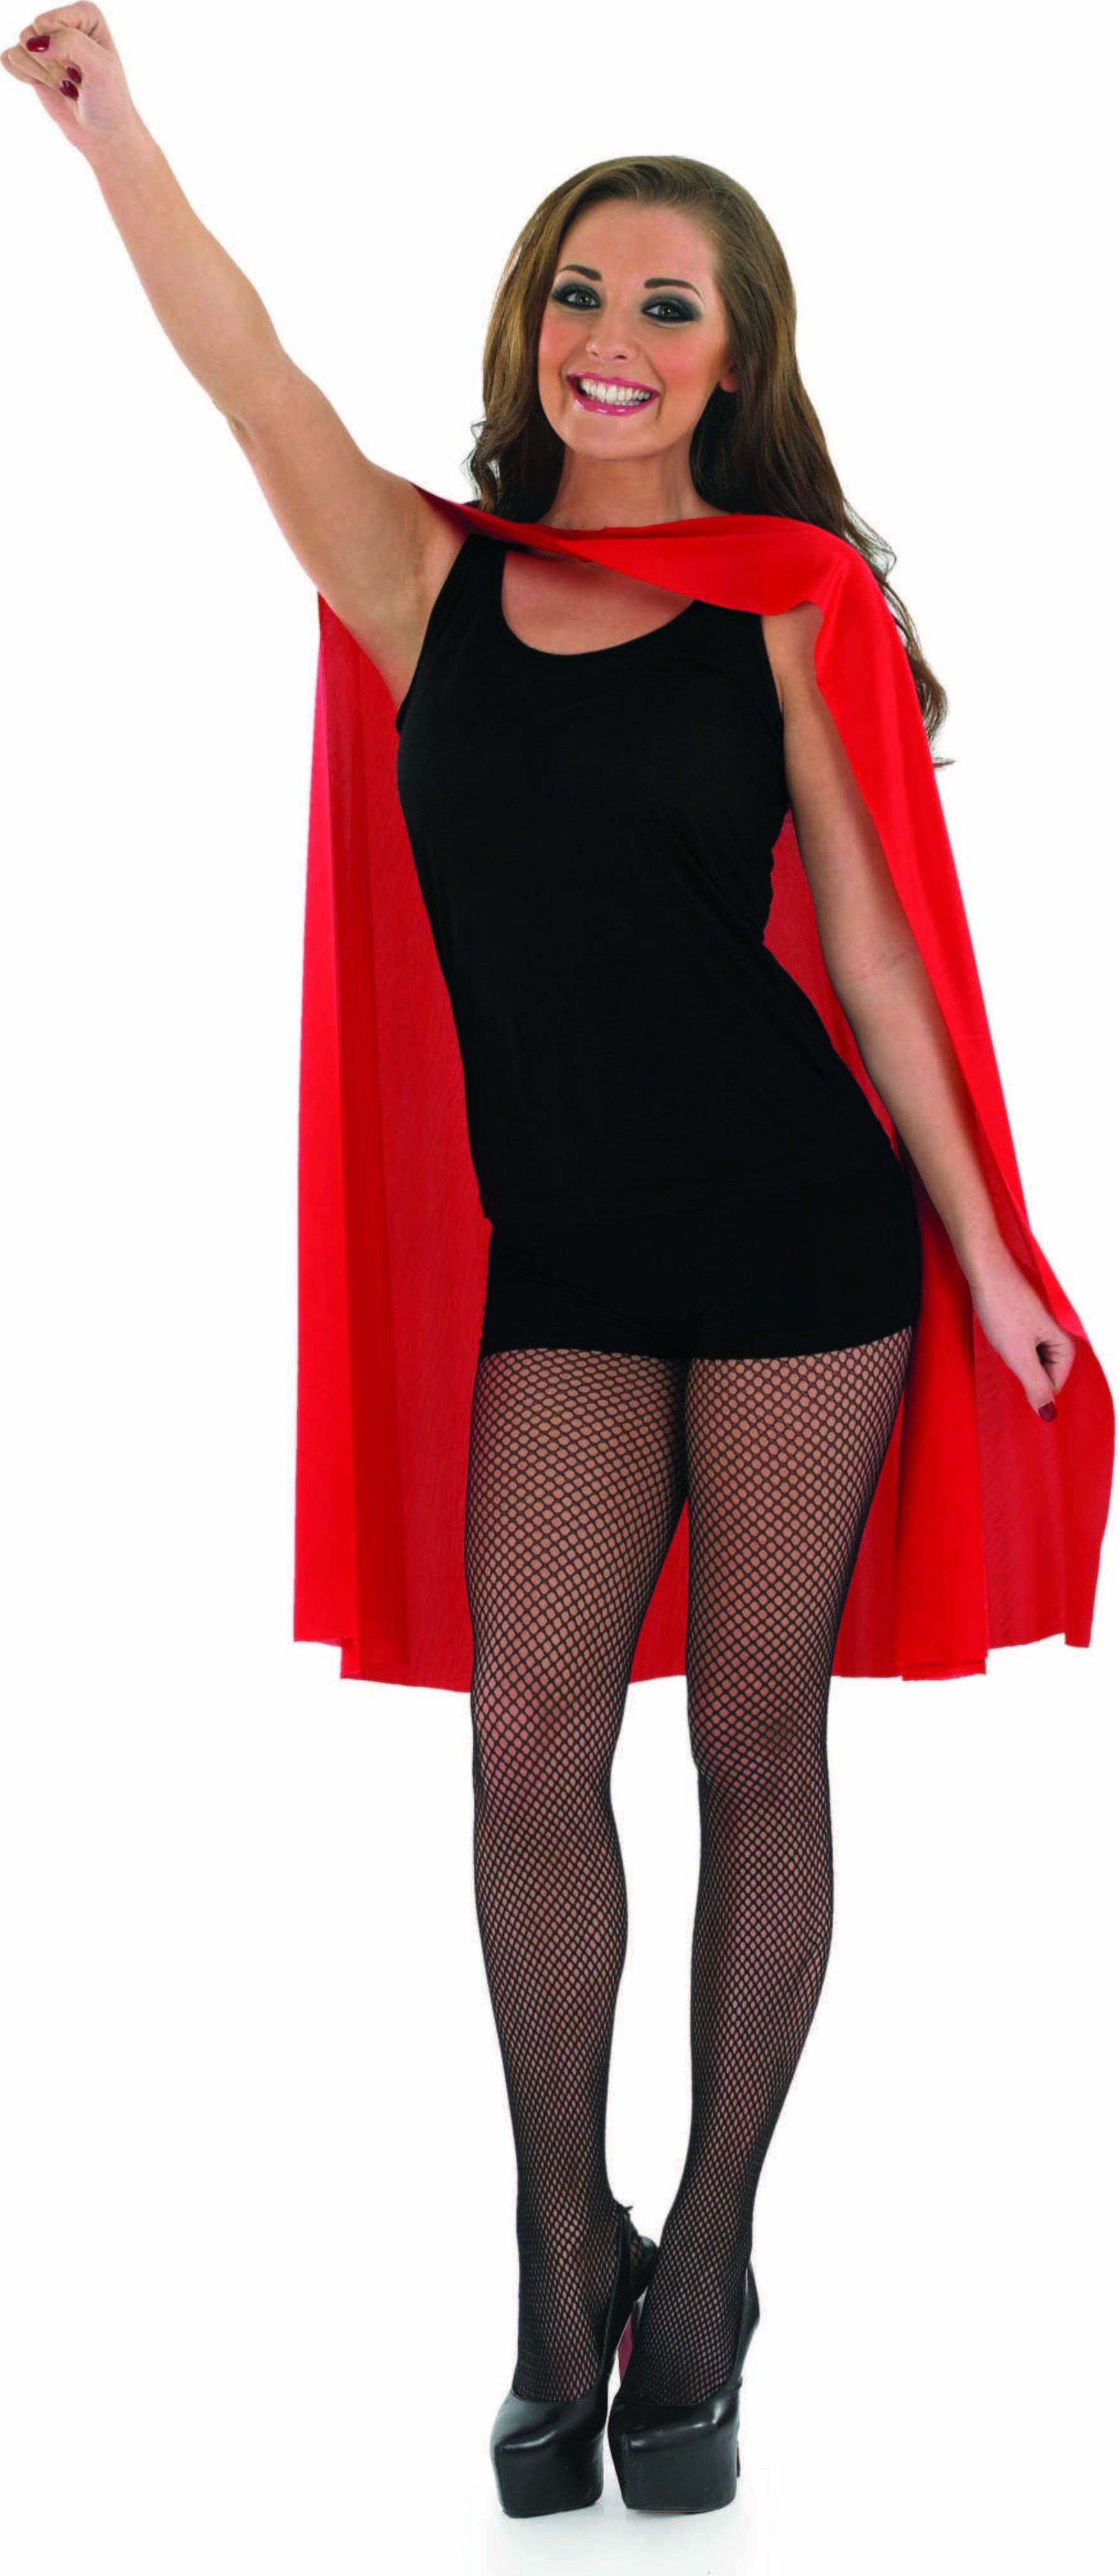 Adult Unisex Red Superhero Cape - (Red)